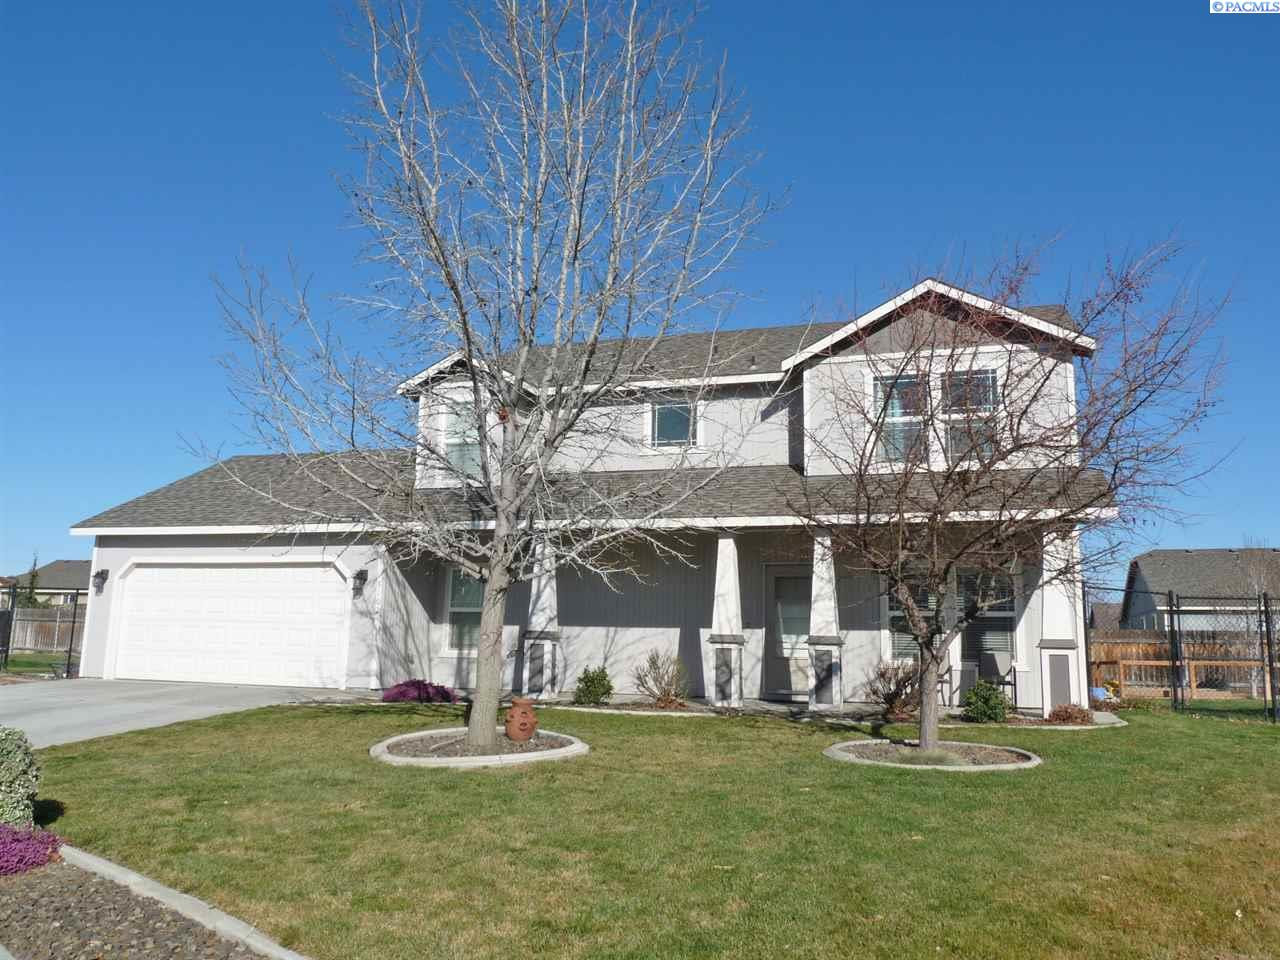 Single Family Home for Sale at 5102 Desert Dove Loop 5102 Desert Dove Loop West Richland, Washington 99353 United States